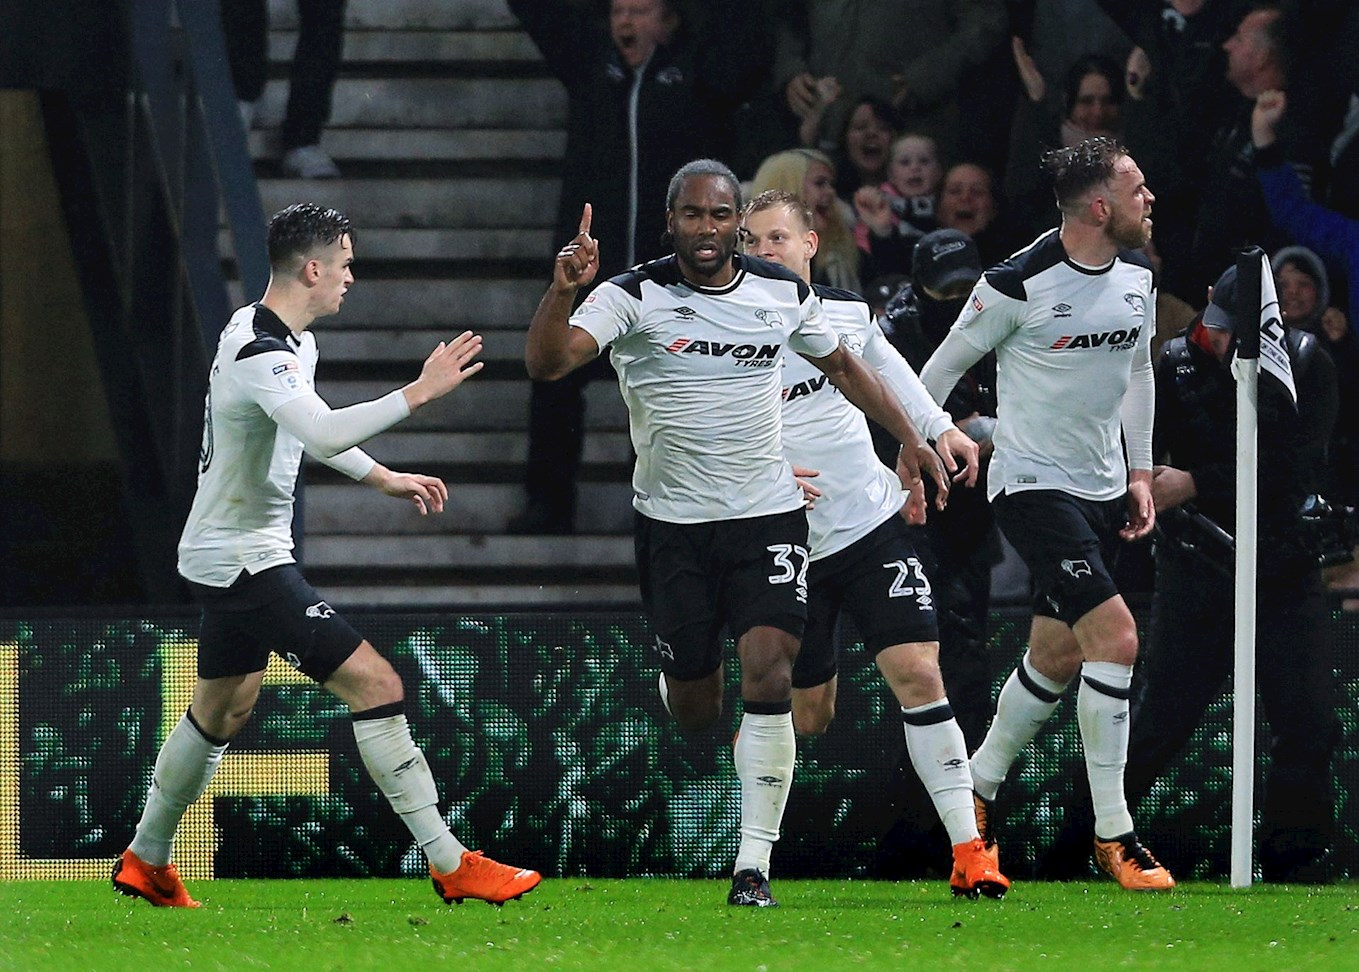 Cameron Jerome celebrates